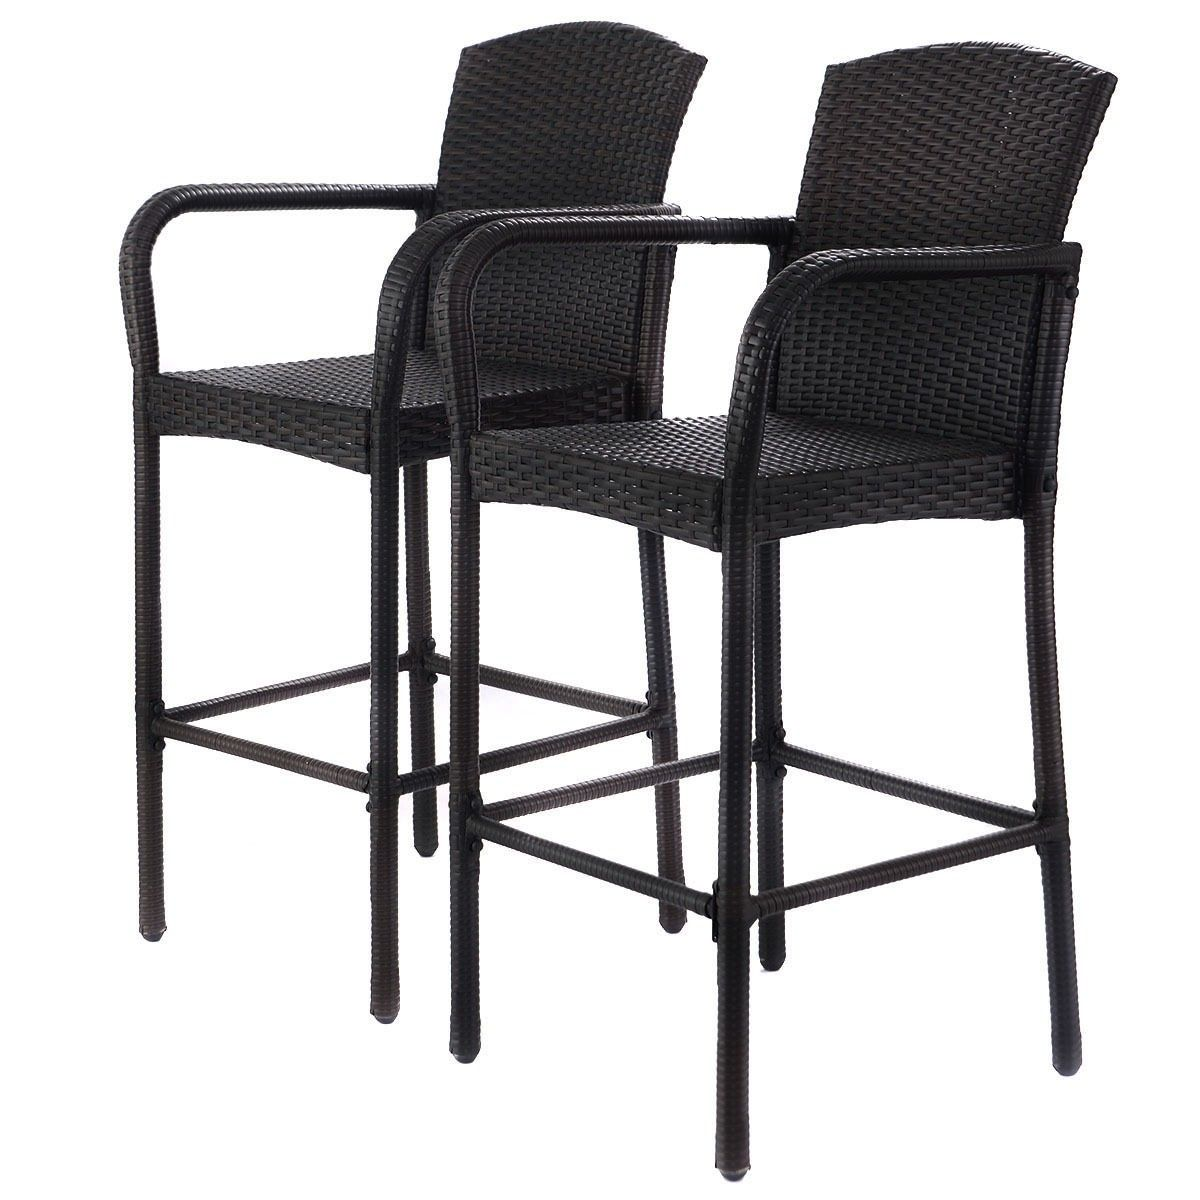 high chair that attaches to counter evenflo majestic instruction manual 2 pcs rattan bar stool set chairs household appliances wicker dining patio furniture armrest